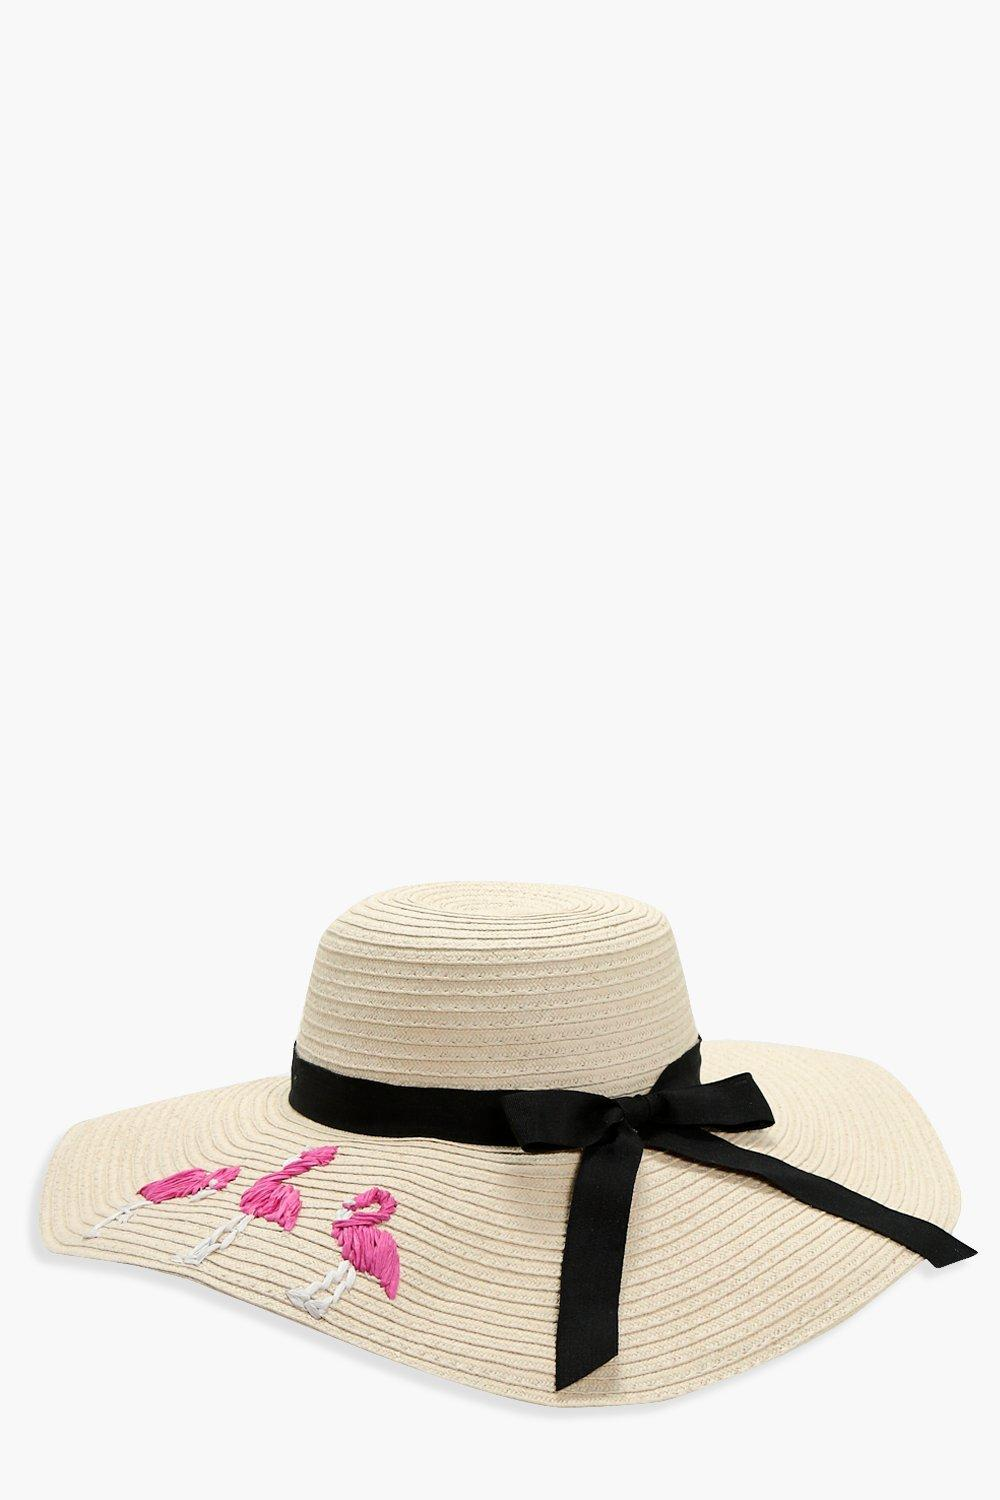 Flamingo Straw Floppy Hat - natural - Sarah Flamin